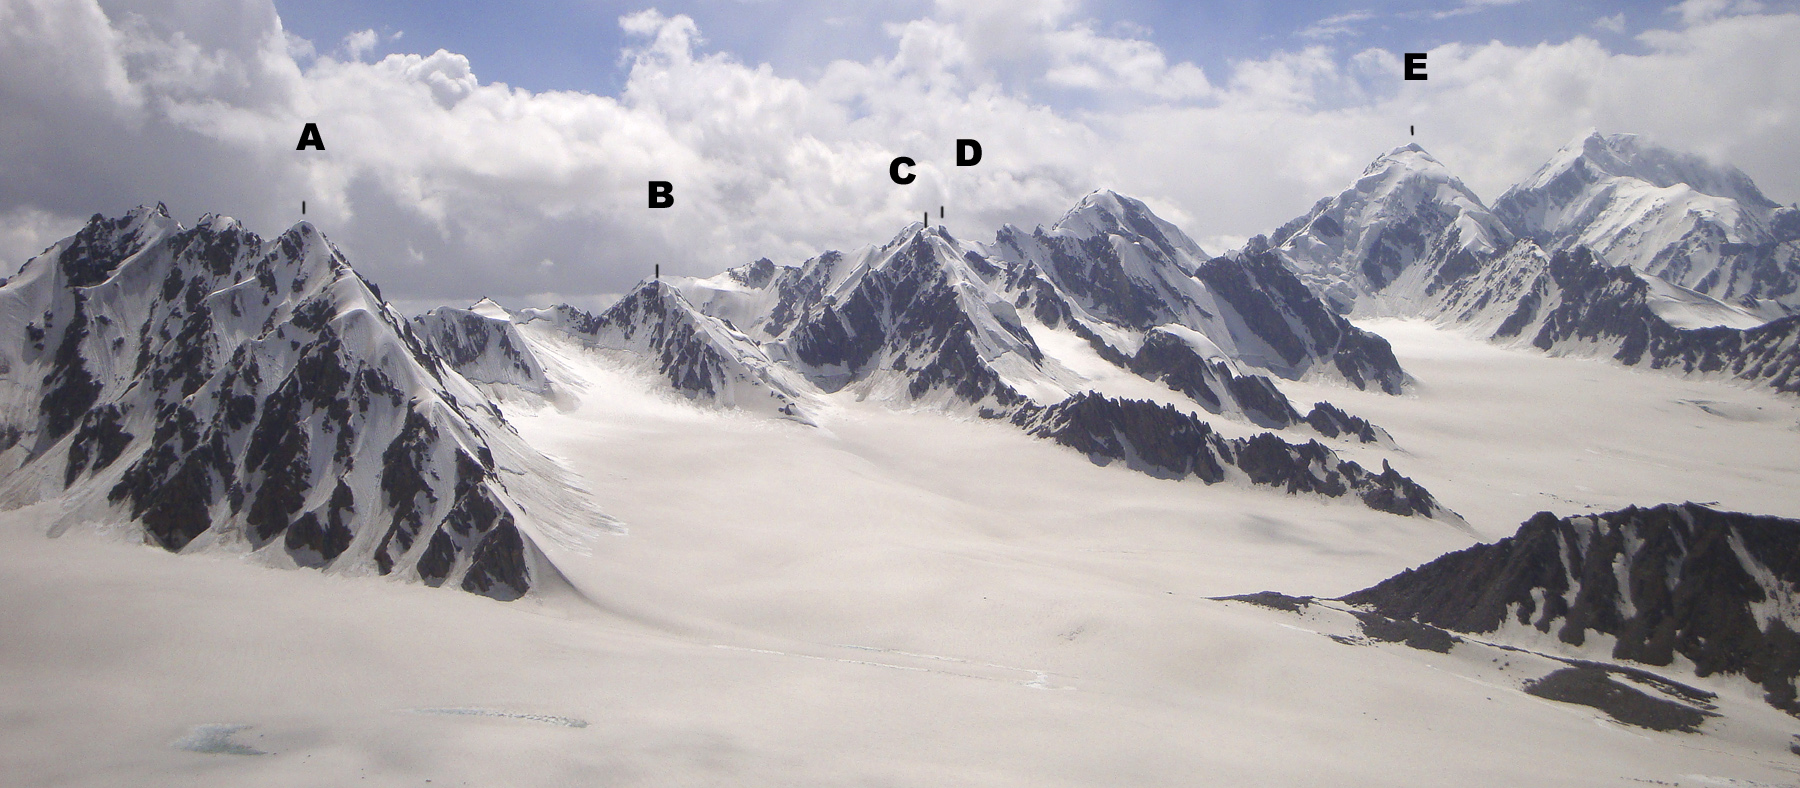 The expansive upper Qala-i-Hurst Glacier basin. (A) Koh-e-Beefy. (B) Koh-e-Baffa. (C) Koh-e-Forot Zorman. (D) top of unnamed peak attempted by Dutch. (E) Koh-e-Yakhi. Low rocky ridge in right foreground is southern end of Pt. 5,200m, climbed in 2008.